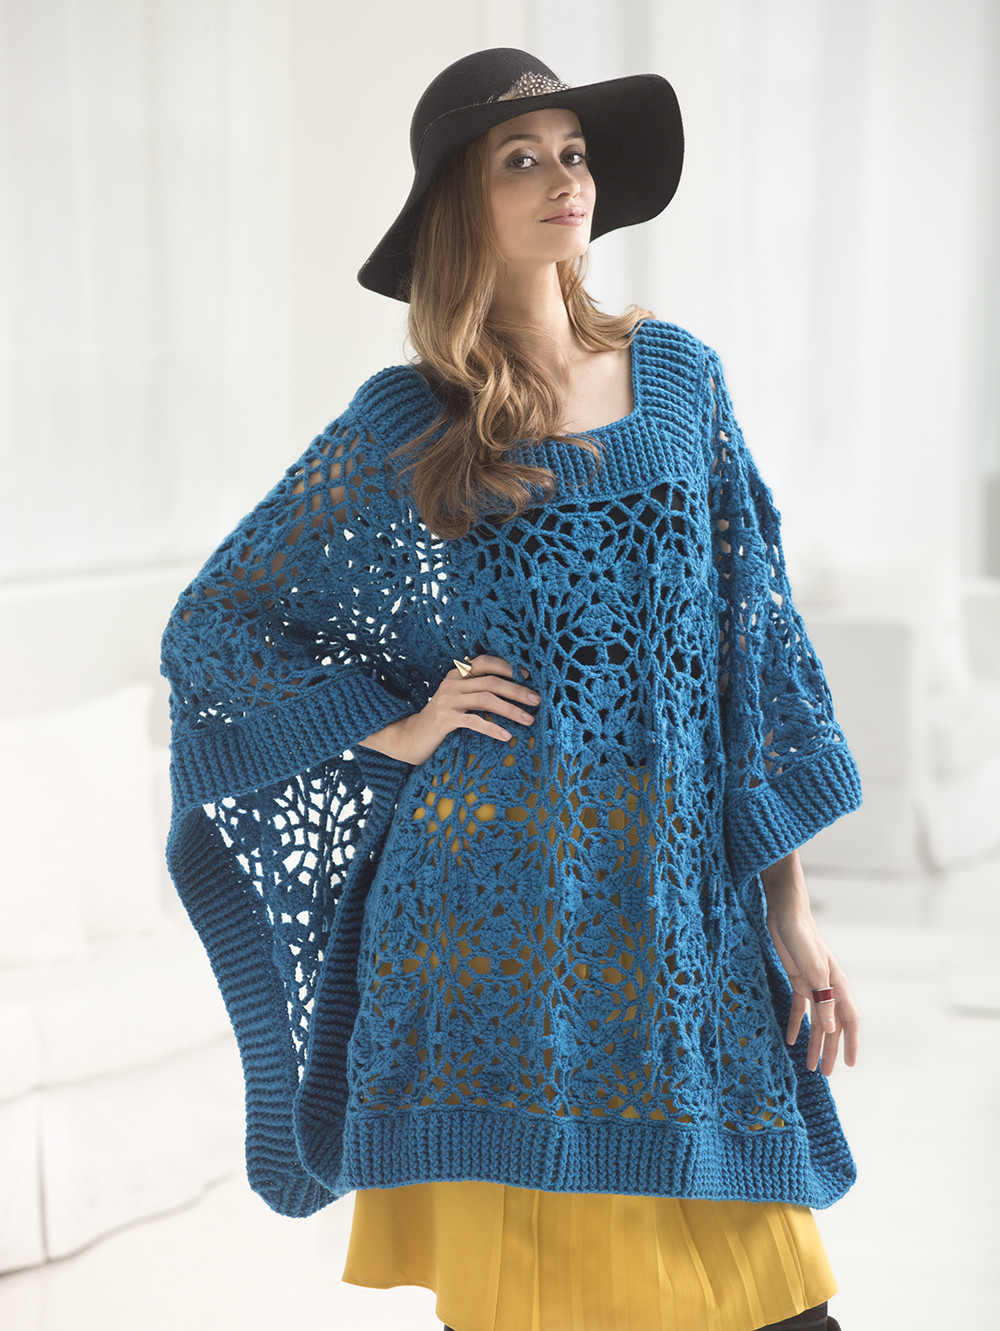 Poncho A Crochet Lovely Our Favorite Crochet Sweater Kits for Mom and Baby Of Lovely 49 Ideas Poncho A Crochet